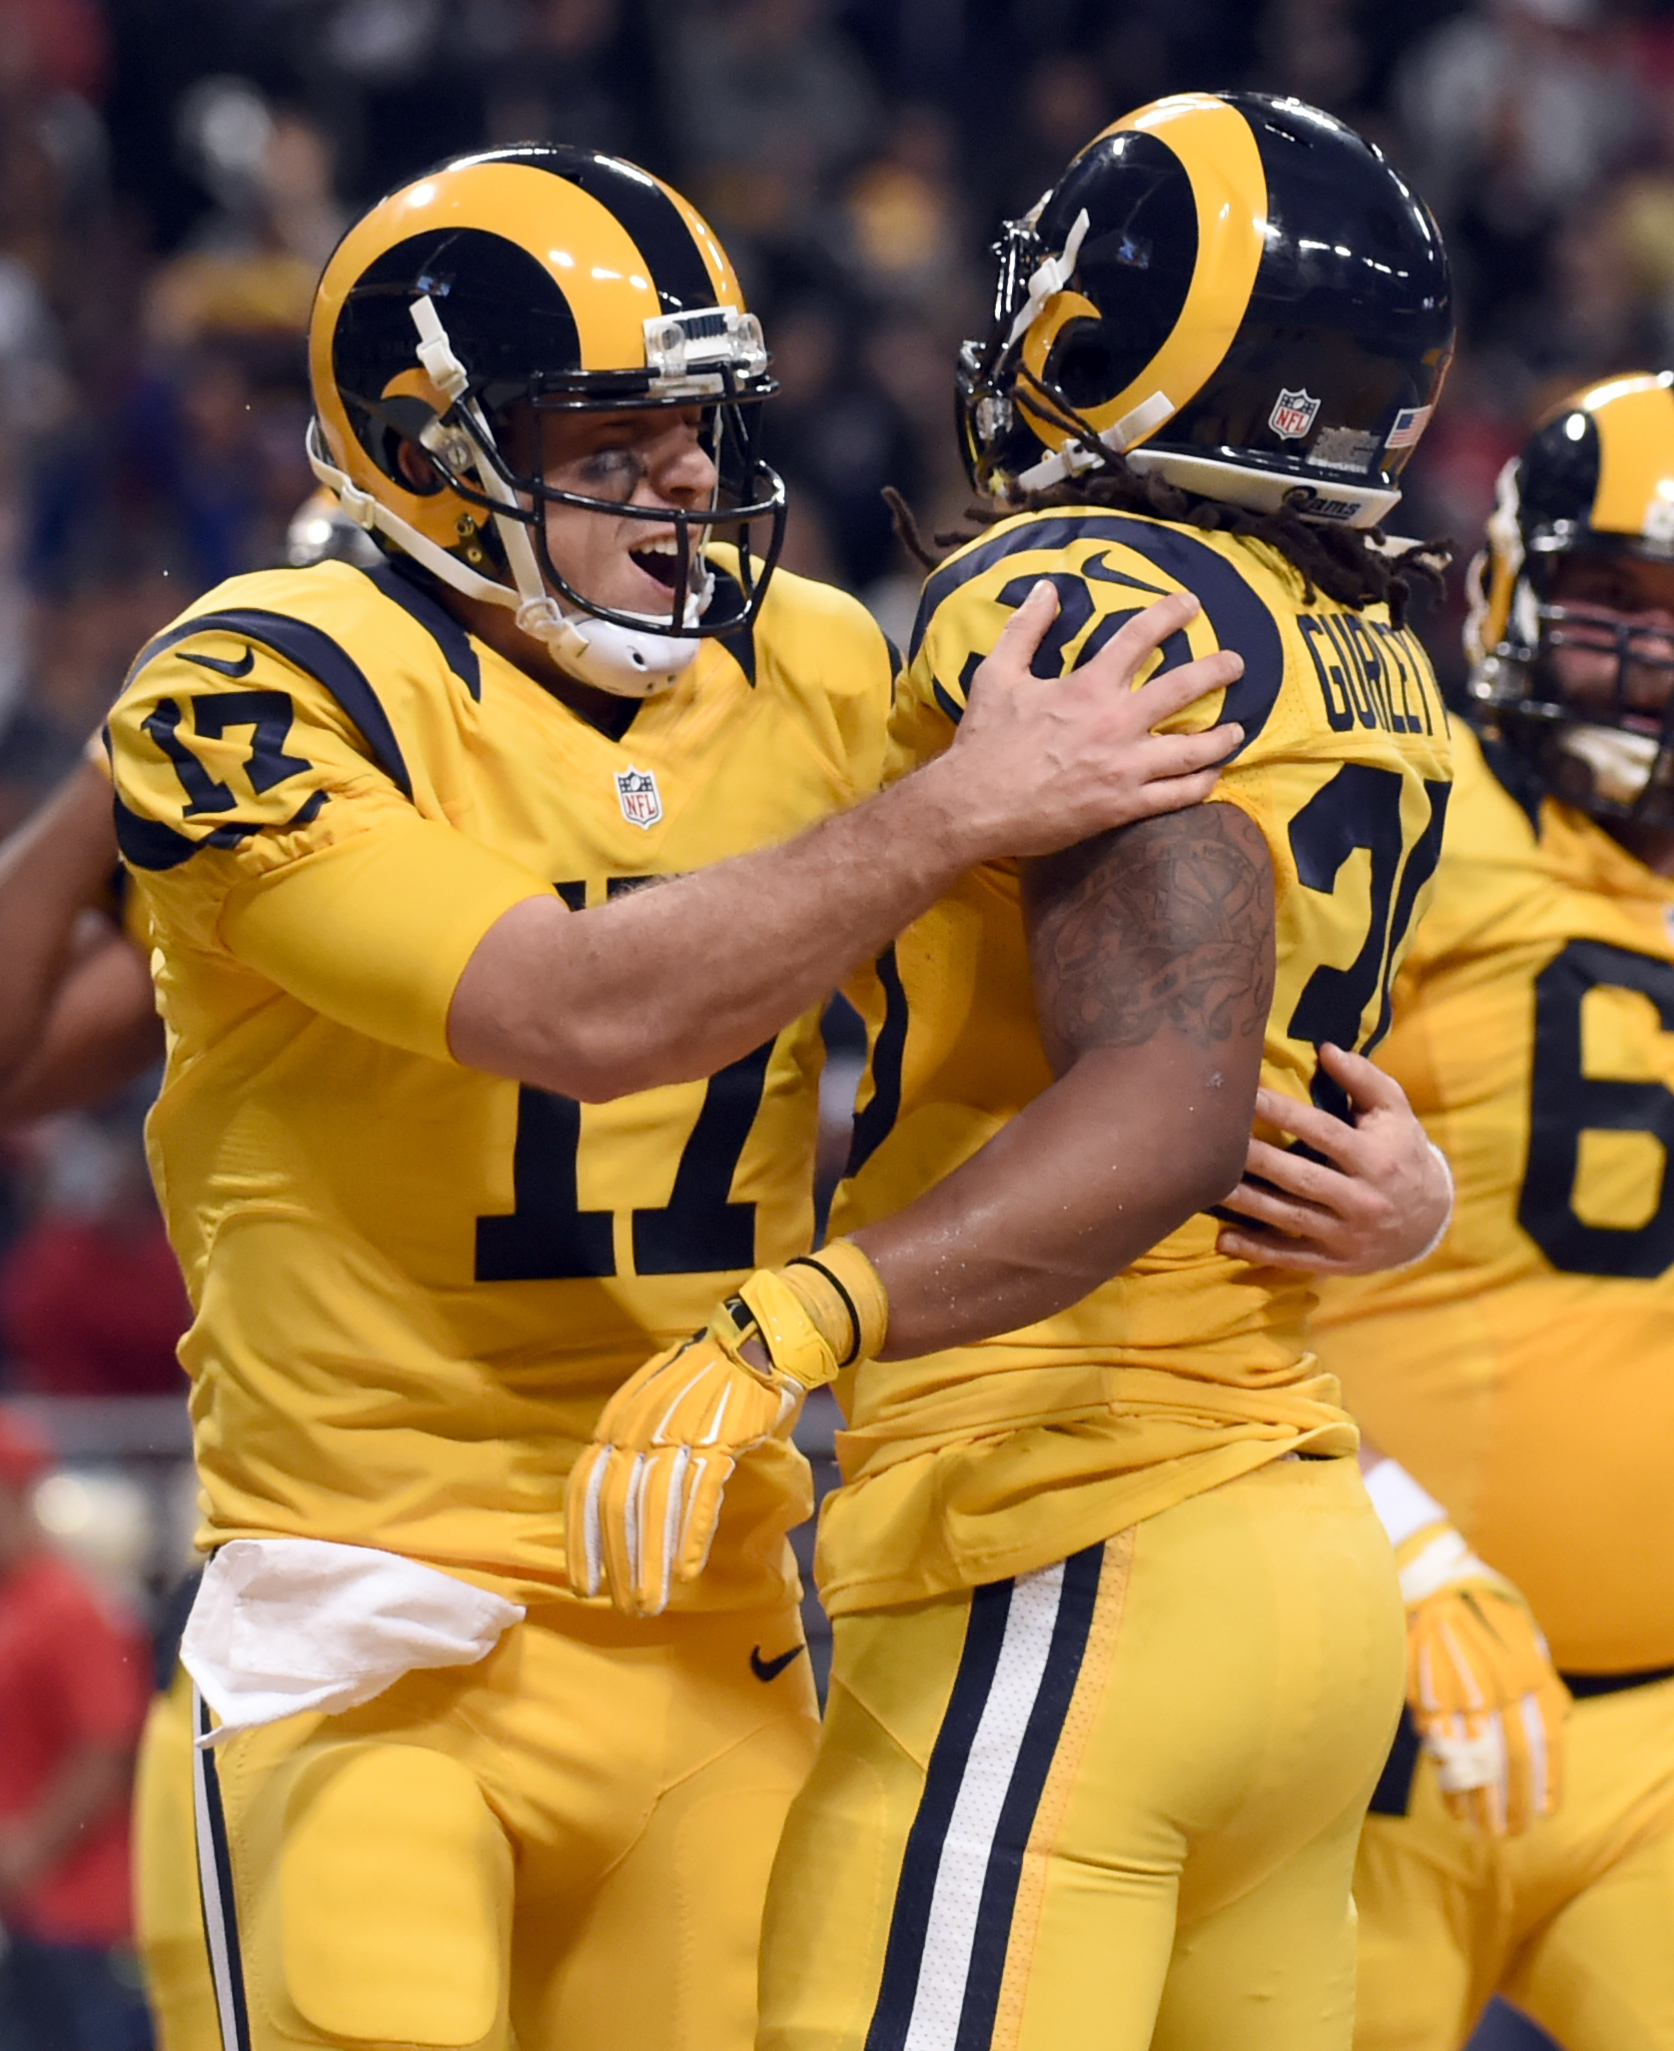 St. Louis Rams running back Todd Gurley, right, is congratulated by quarterback Case Keenum after scoring on a 3-yard run during the second quarter of an NFL football game against the Tampa Bay Buccaneers on Thursday, Dec. 17, 2015, in St. Louis. (AP Phot